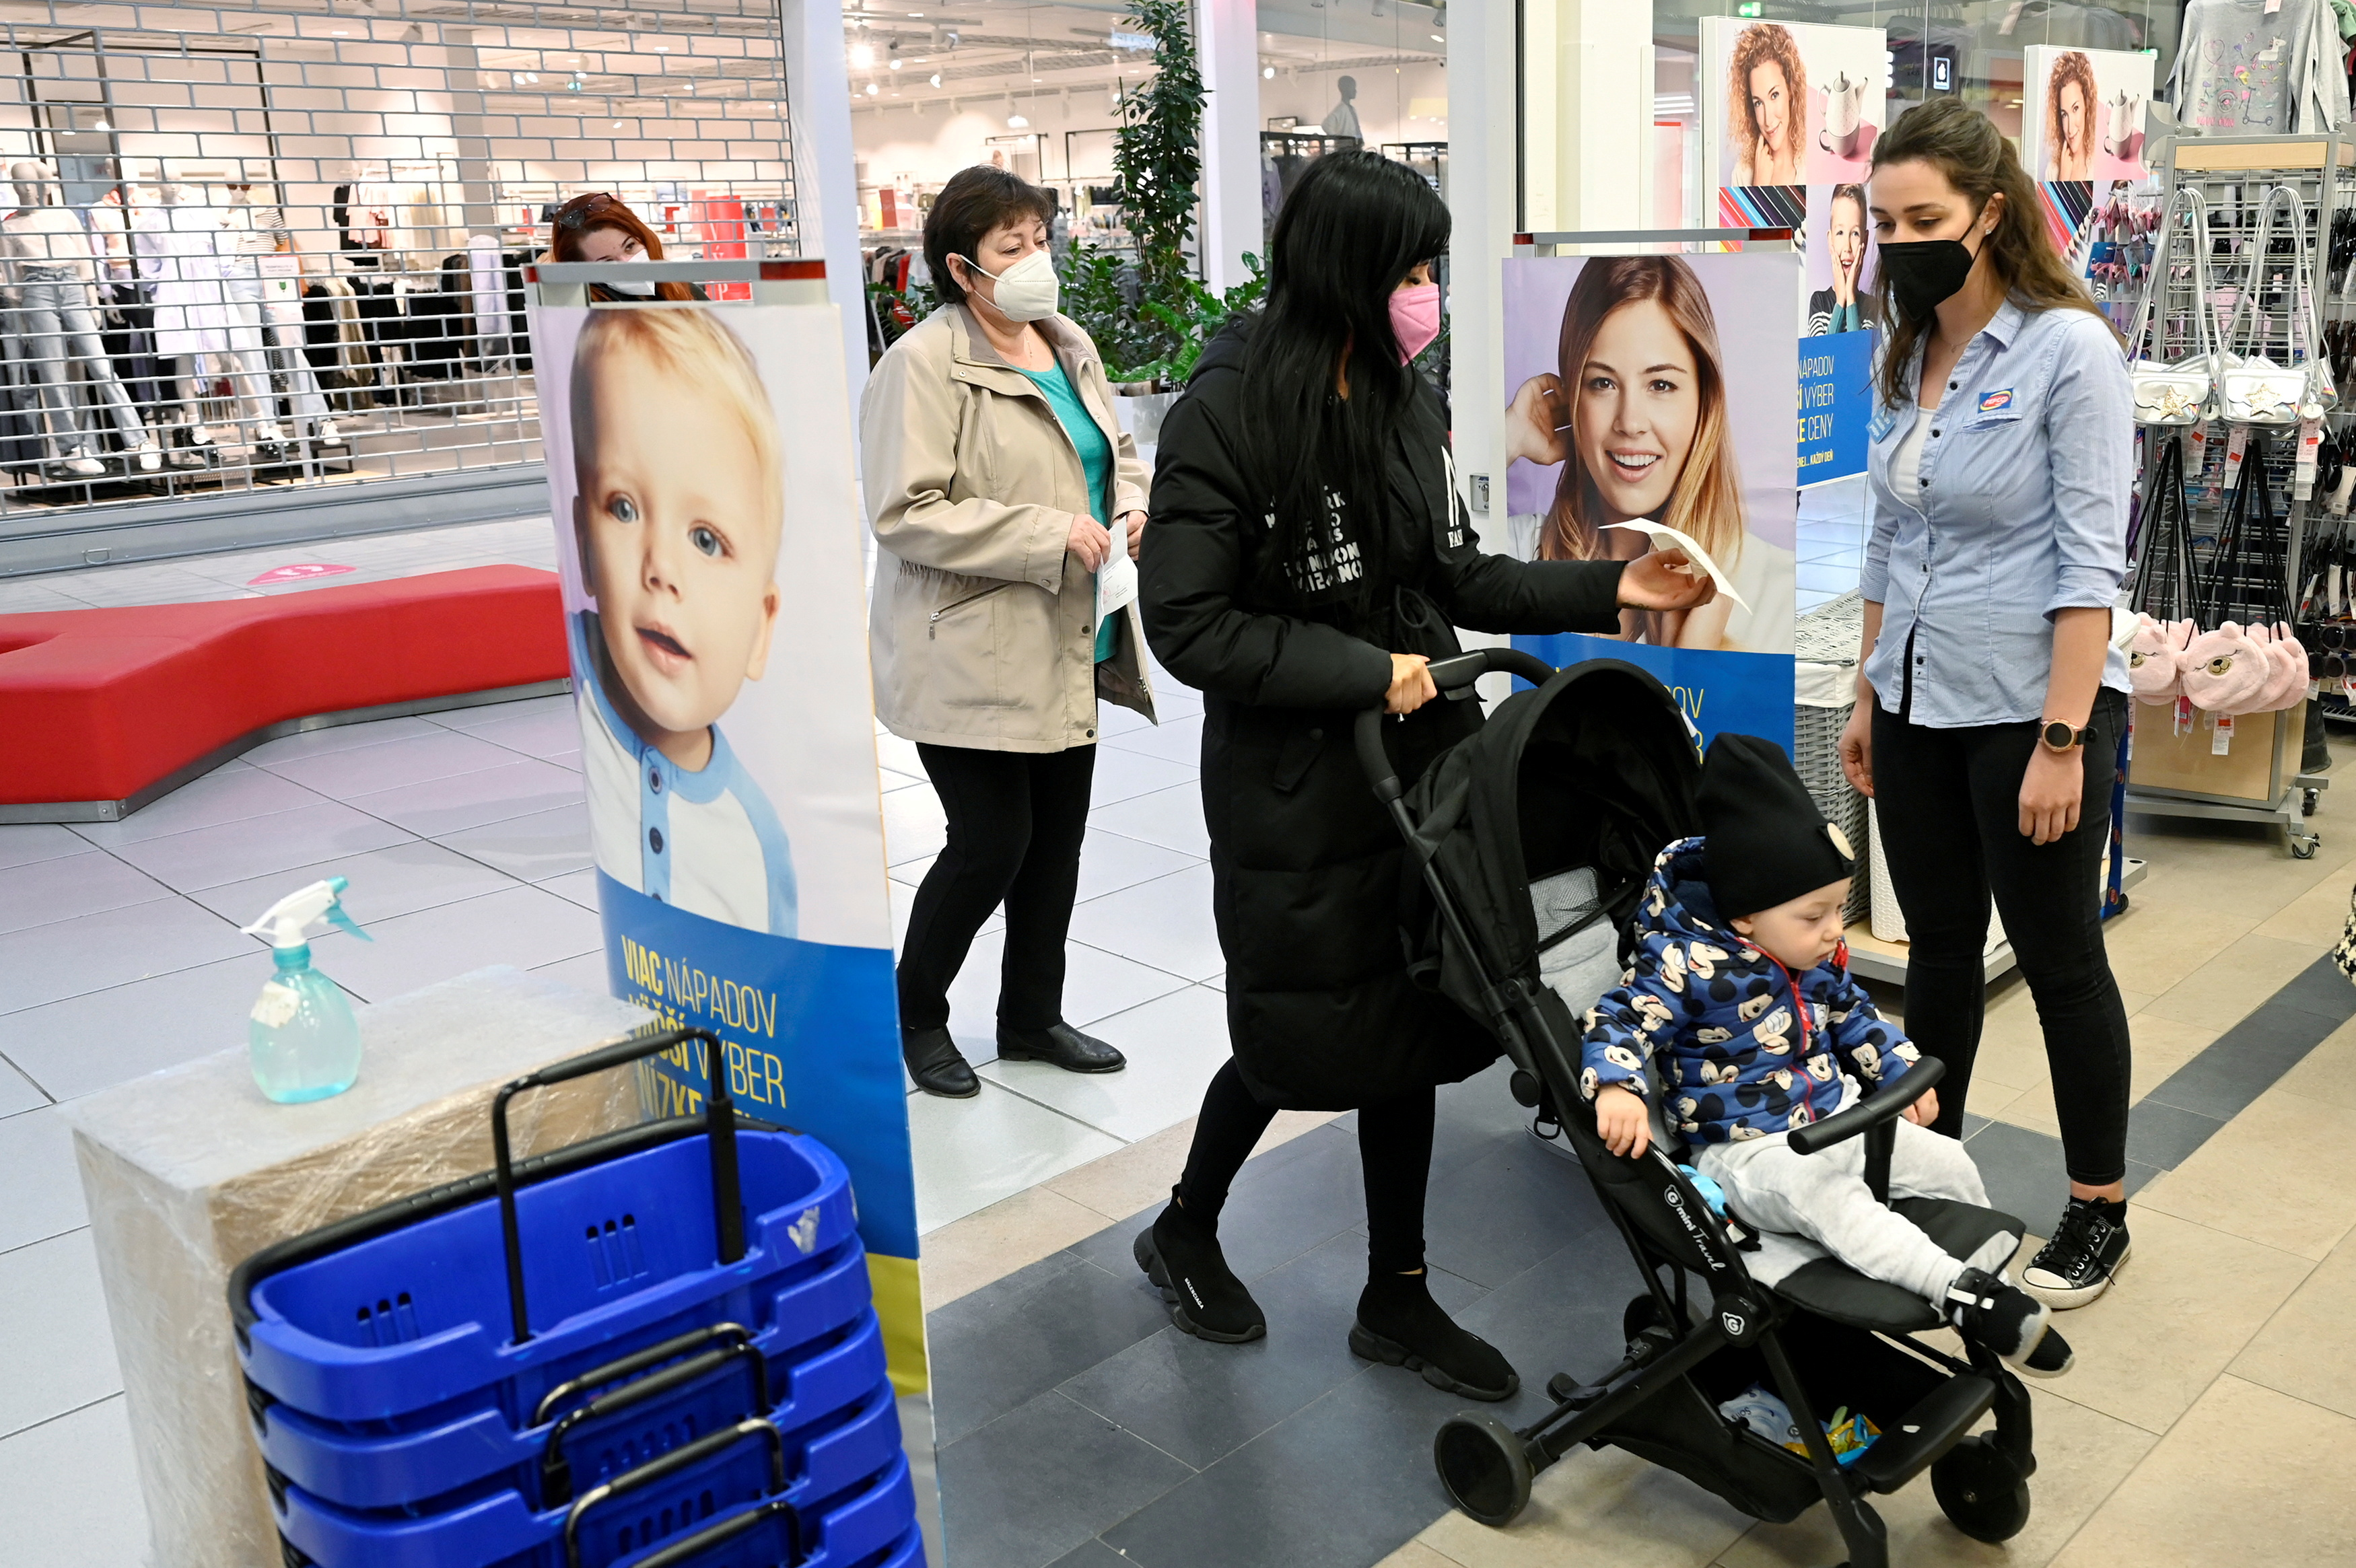 A shop assistant checks the negative COVID-19 test certificate as customers come to a store in the mall, as shops reopen after a lockdown, amid the coronavirus disease (COVID-19) pandemic in Trencin, Slovakia, April 19, 2021.  REUTERS/Radovan Stoklasa